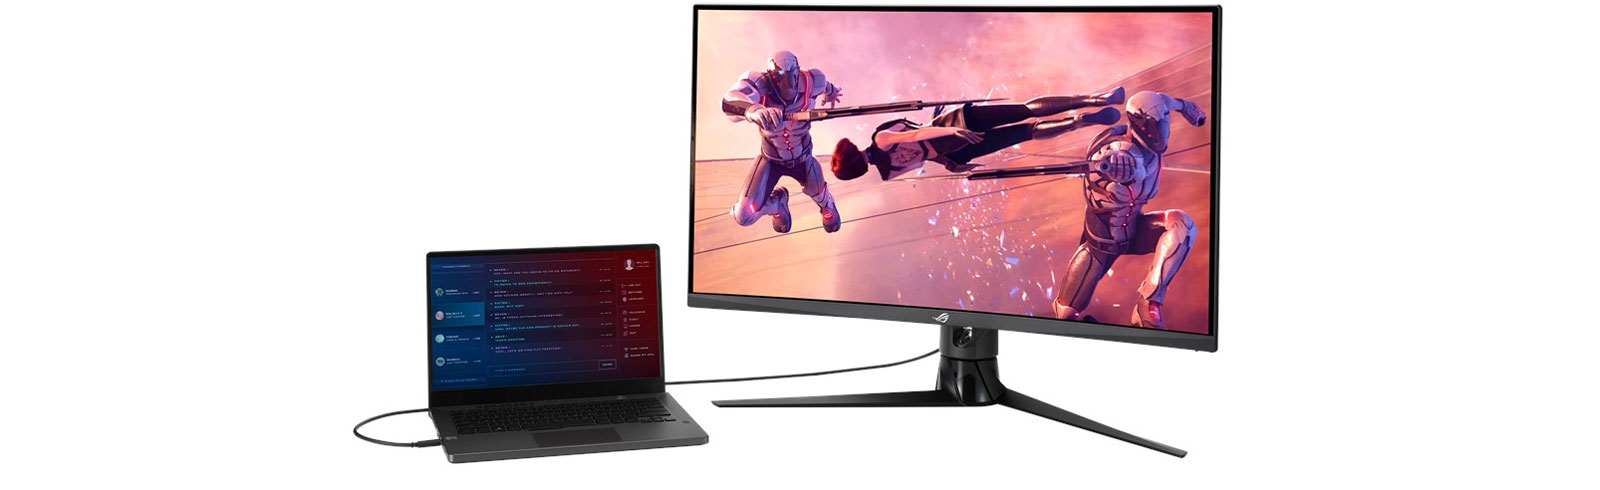 Asus ROG Strix XG32VC with KVM switch is launched